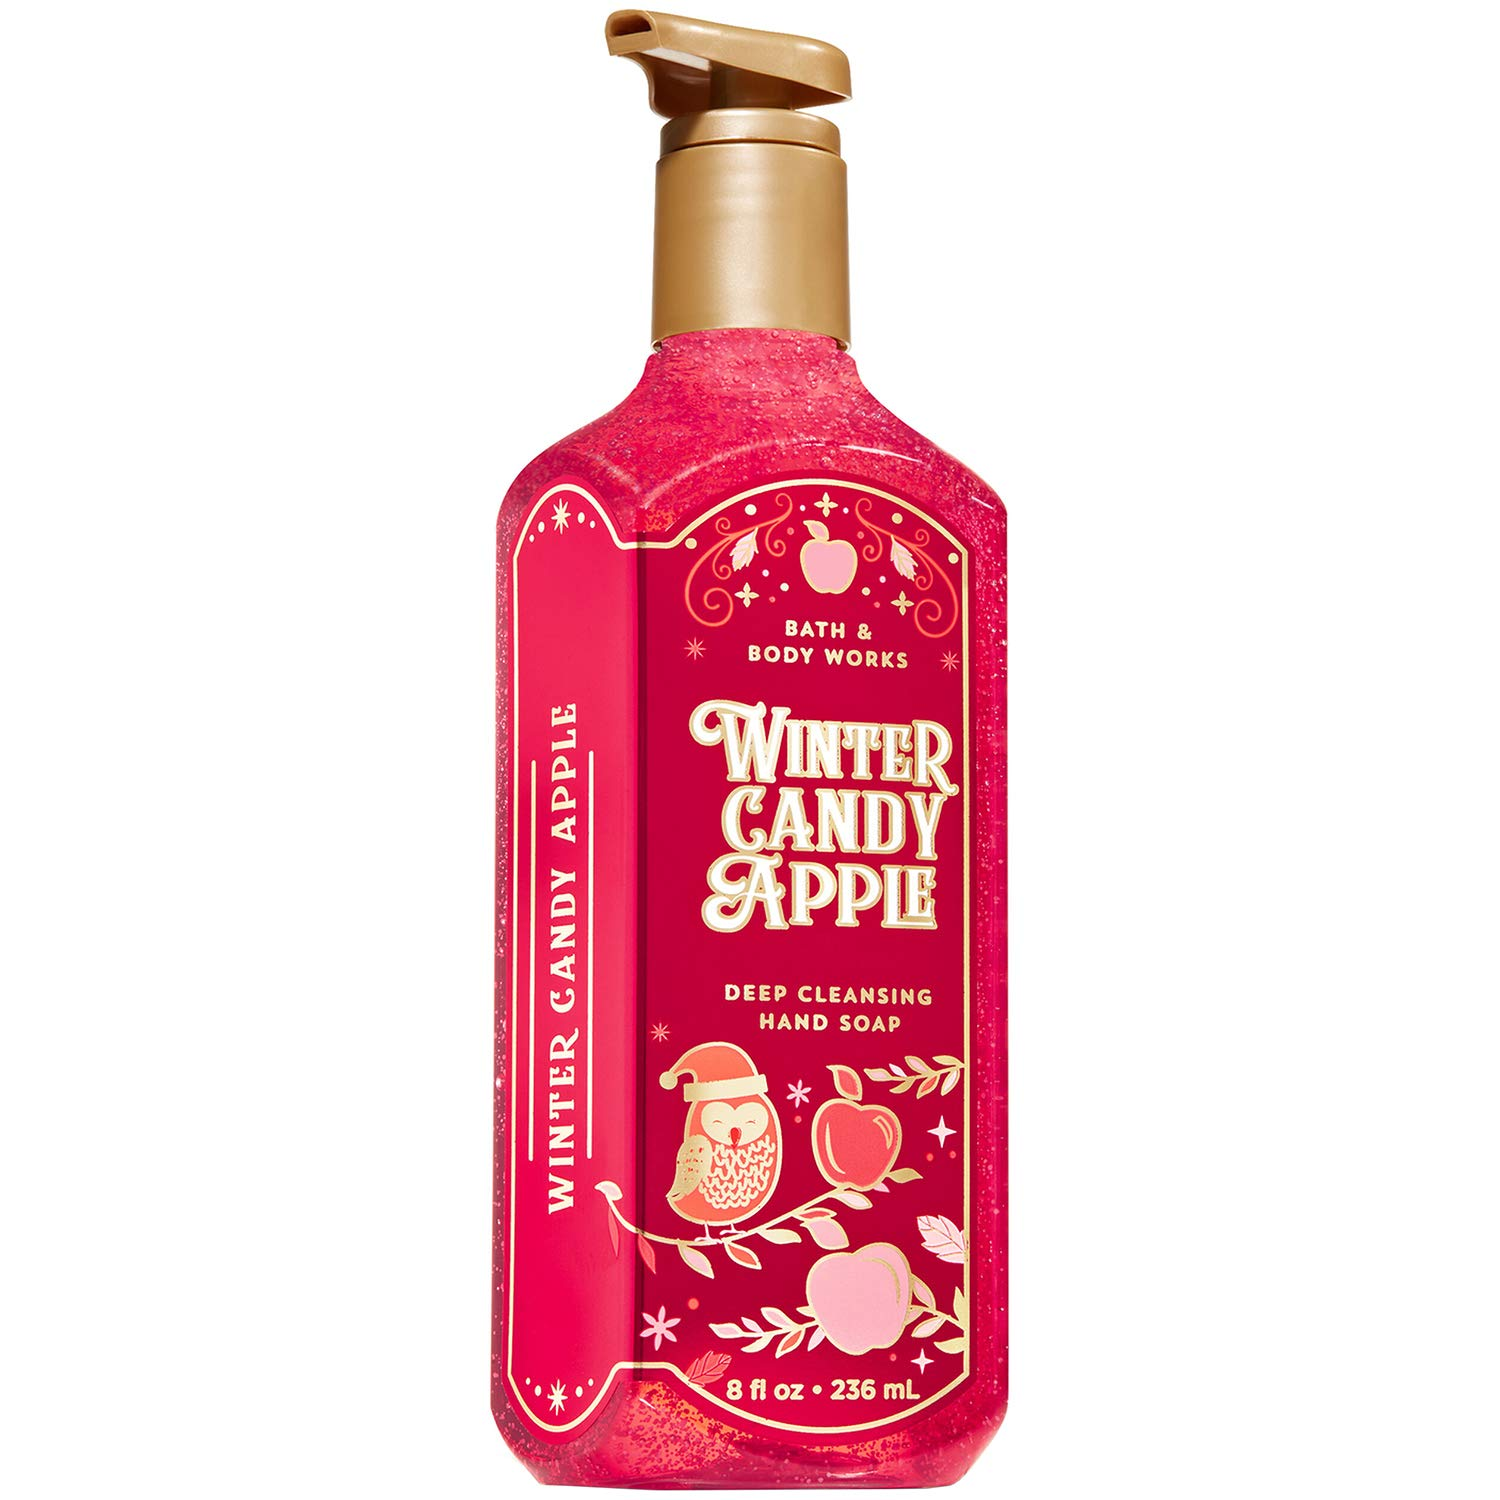 Bath and Body Works WINTER CANDY APPLE Deep Cleansing Hand Soap 8 Fluid Ounce (2019 Edition) : Beauty